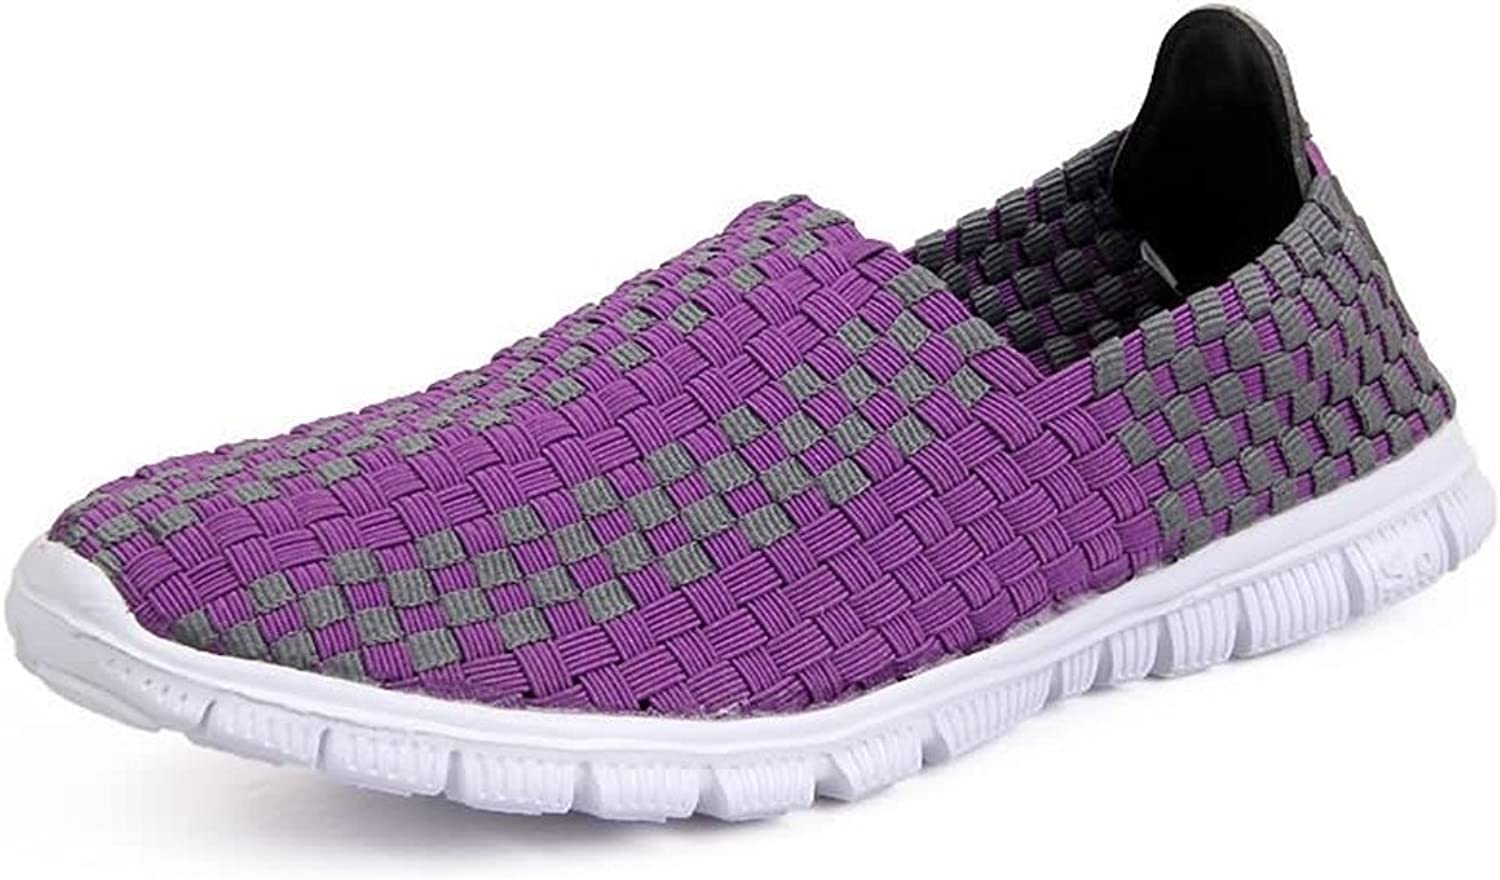 Hilotu Women's and Men's Camouflage Breathable Athletic shoes Grid Pattern Slip On Splice Vamp Leisure Fashion Sneaker Wild Breathable HandKnitted shoes (color   Purple, Size   3.5 M US Big Kid)